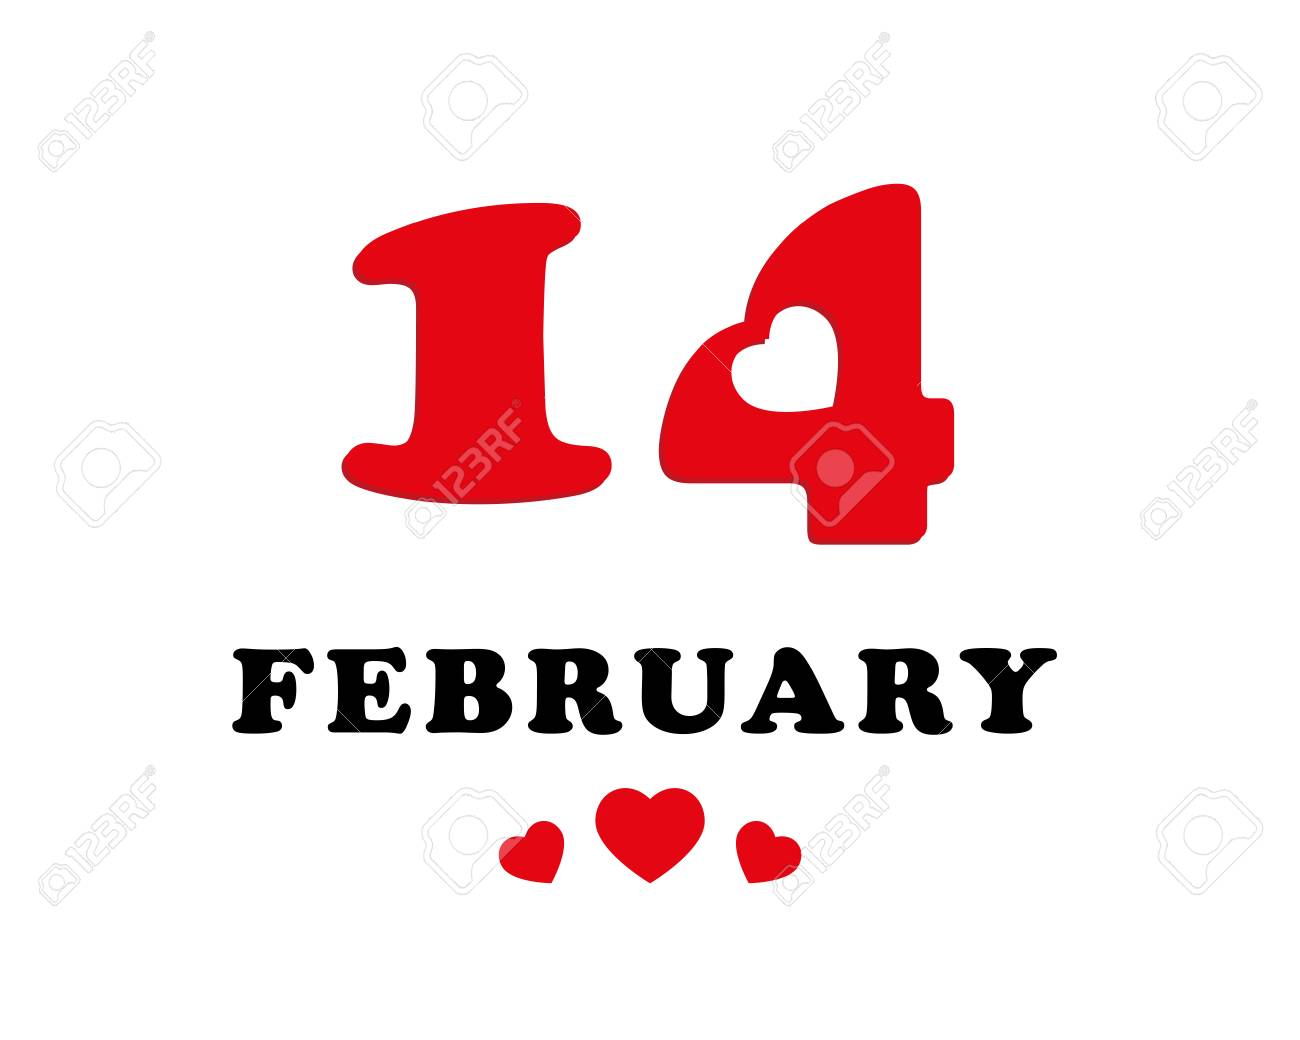 14 February Calendar Date In The Shape Of Heart Valentines